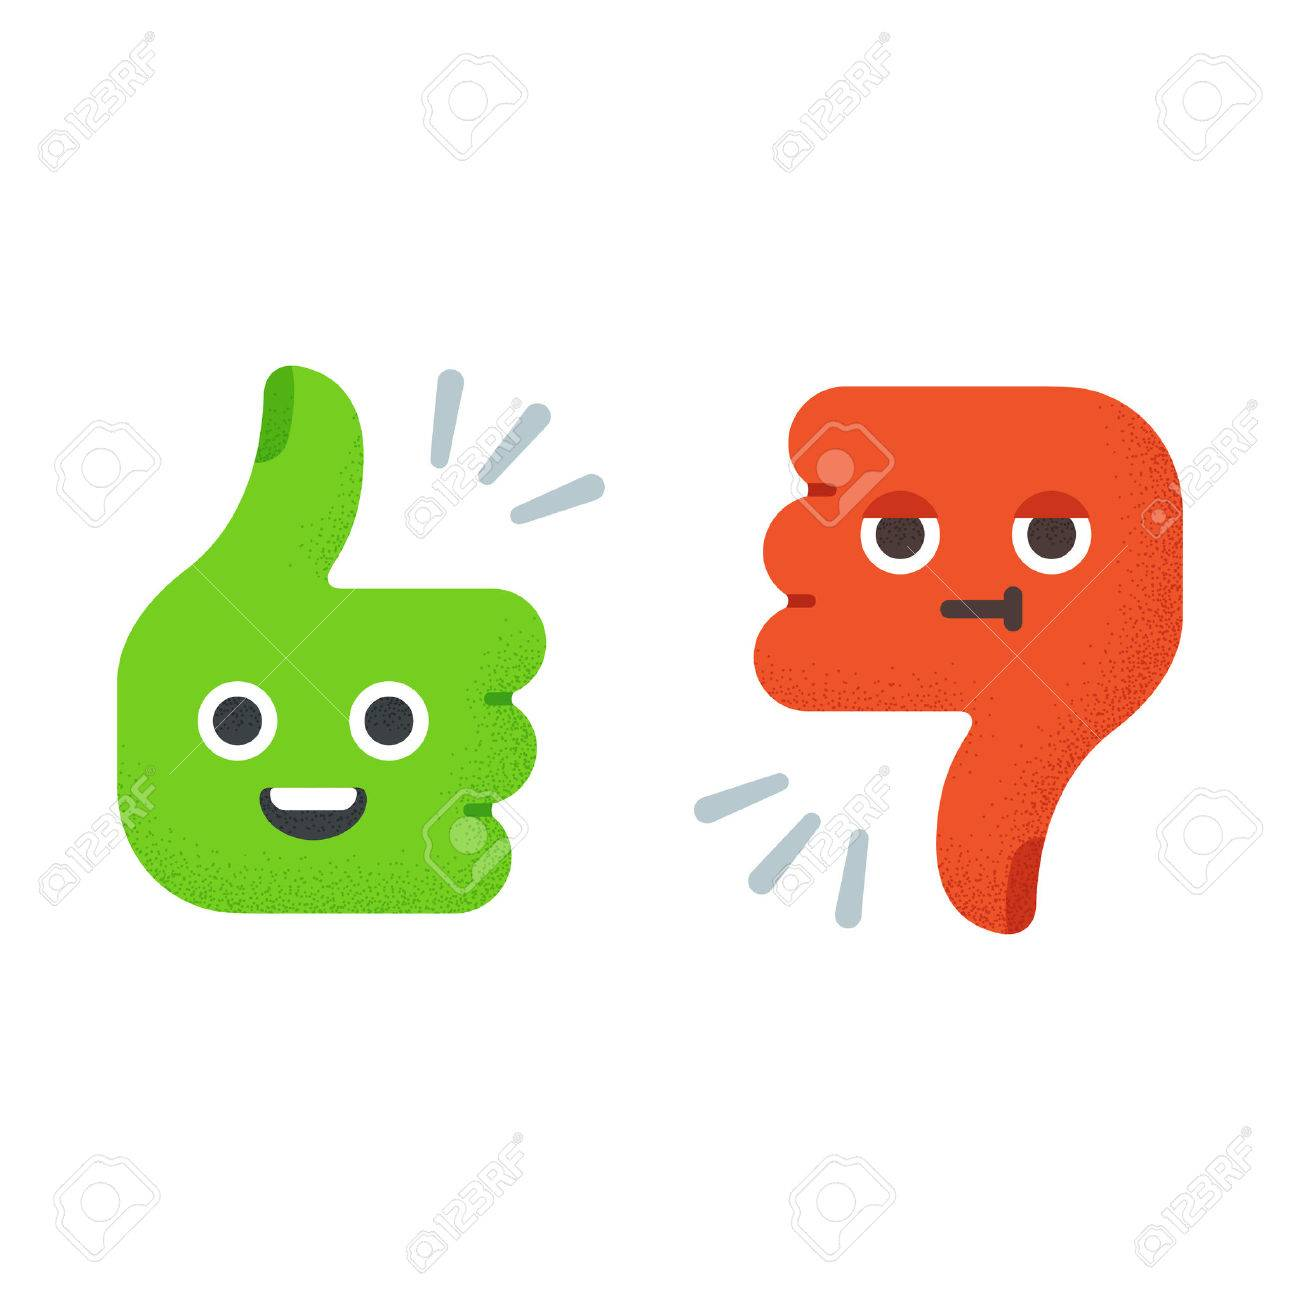 cartoon thumbs up and thumbs down with cute funny faces flat